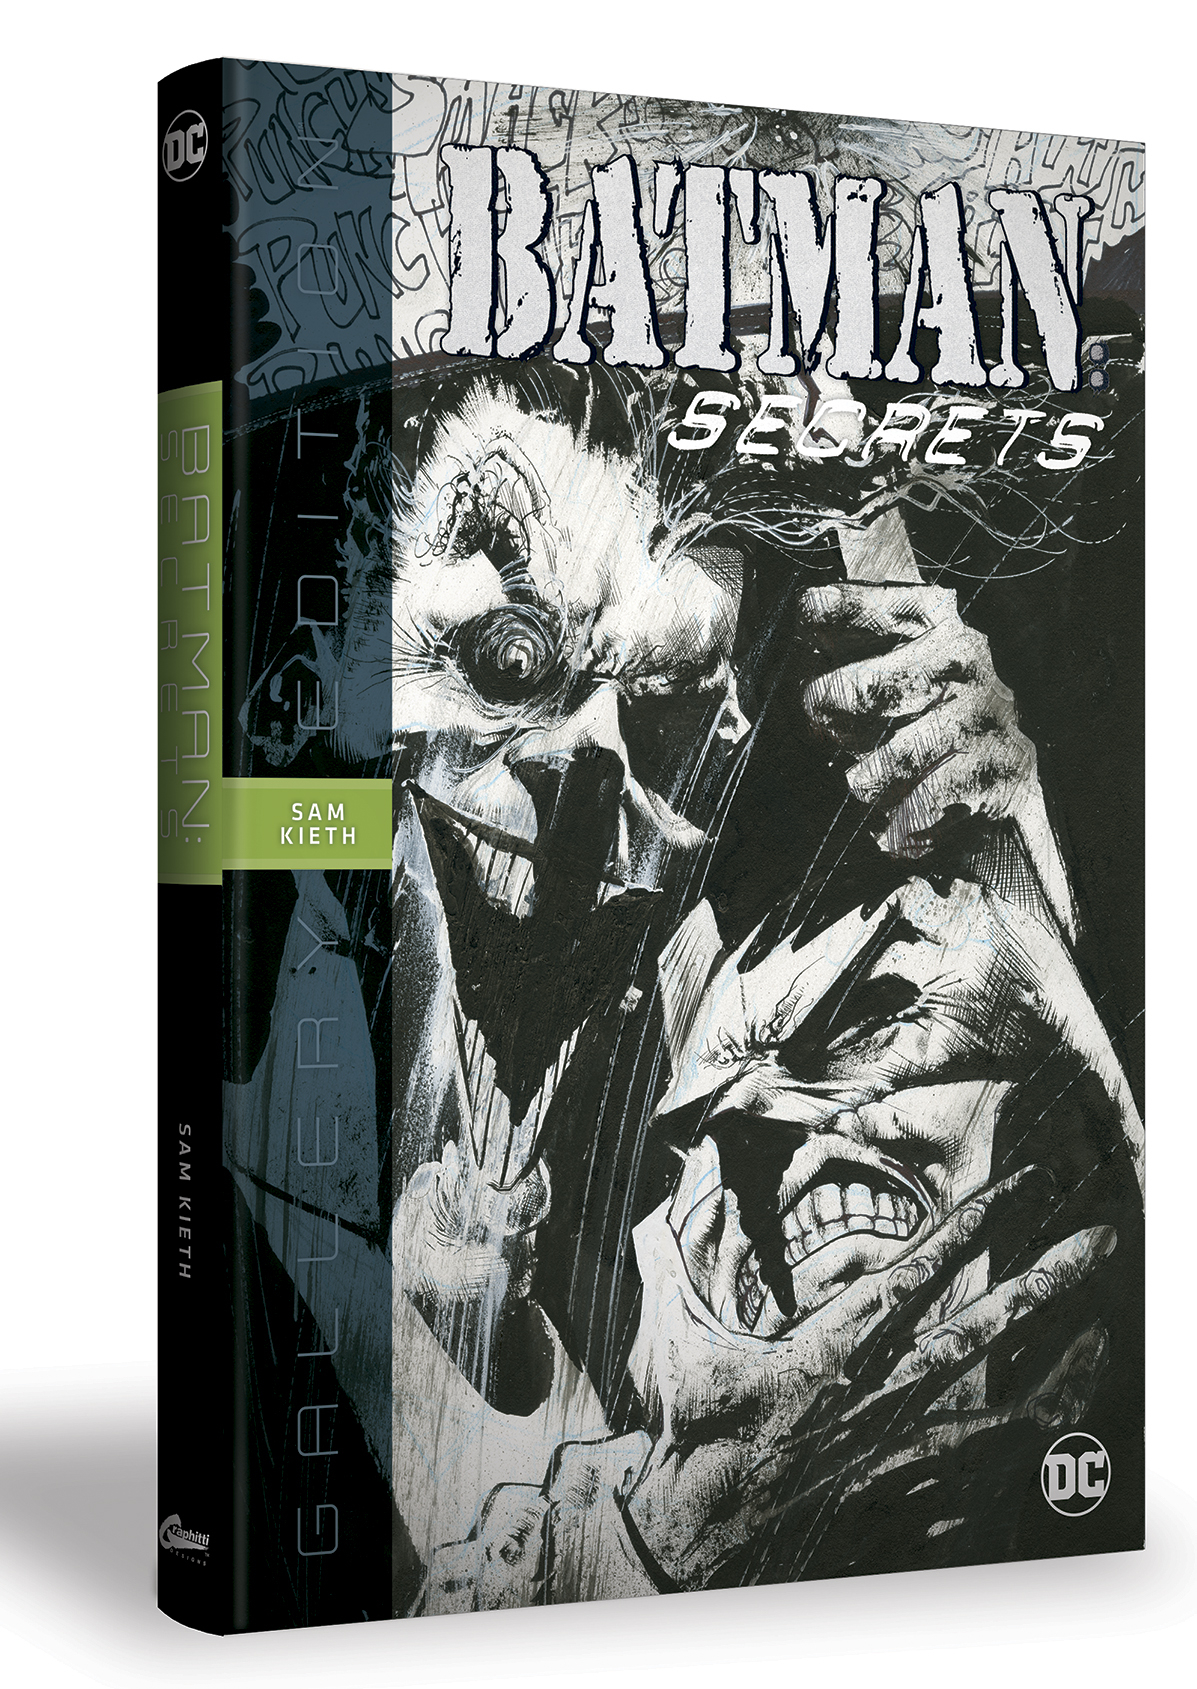 BATMAN SECRETS SAM KIETH GALLERY ED HC (MAR170443)